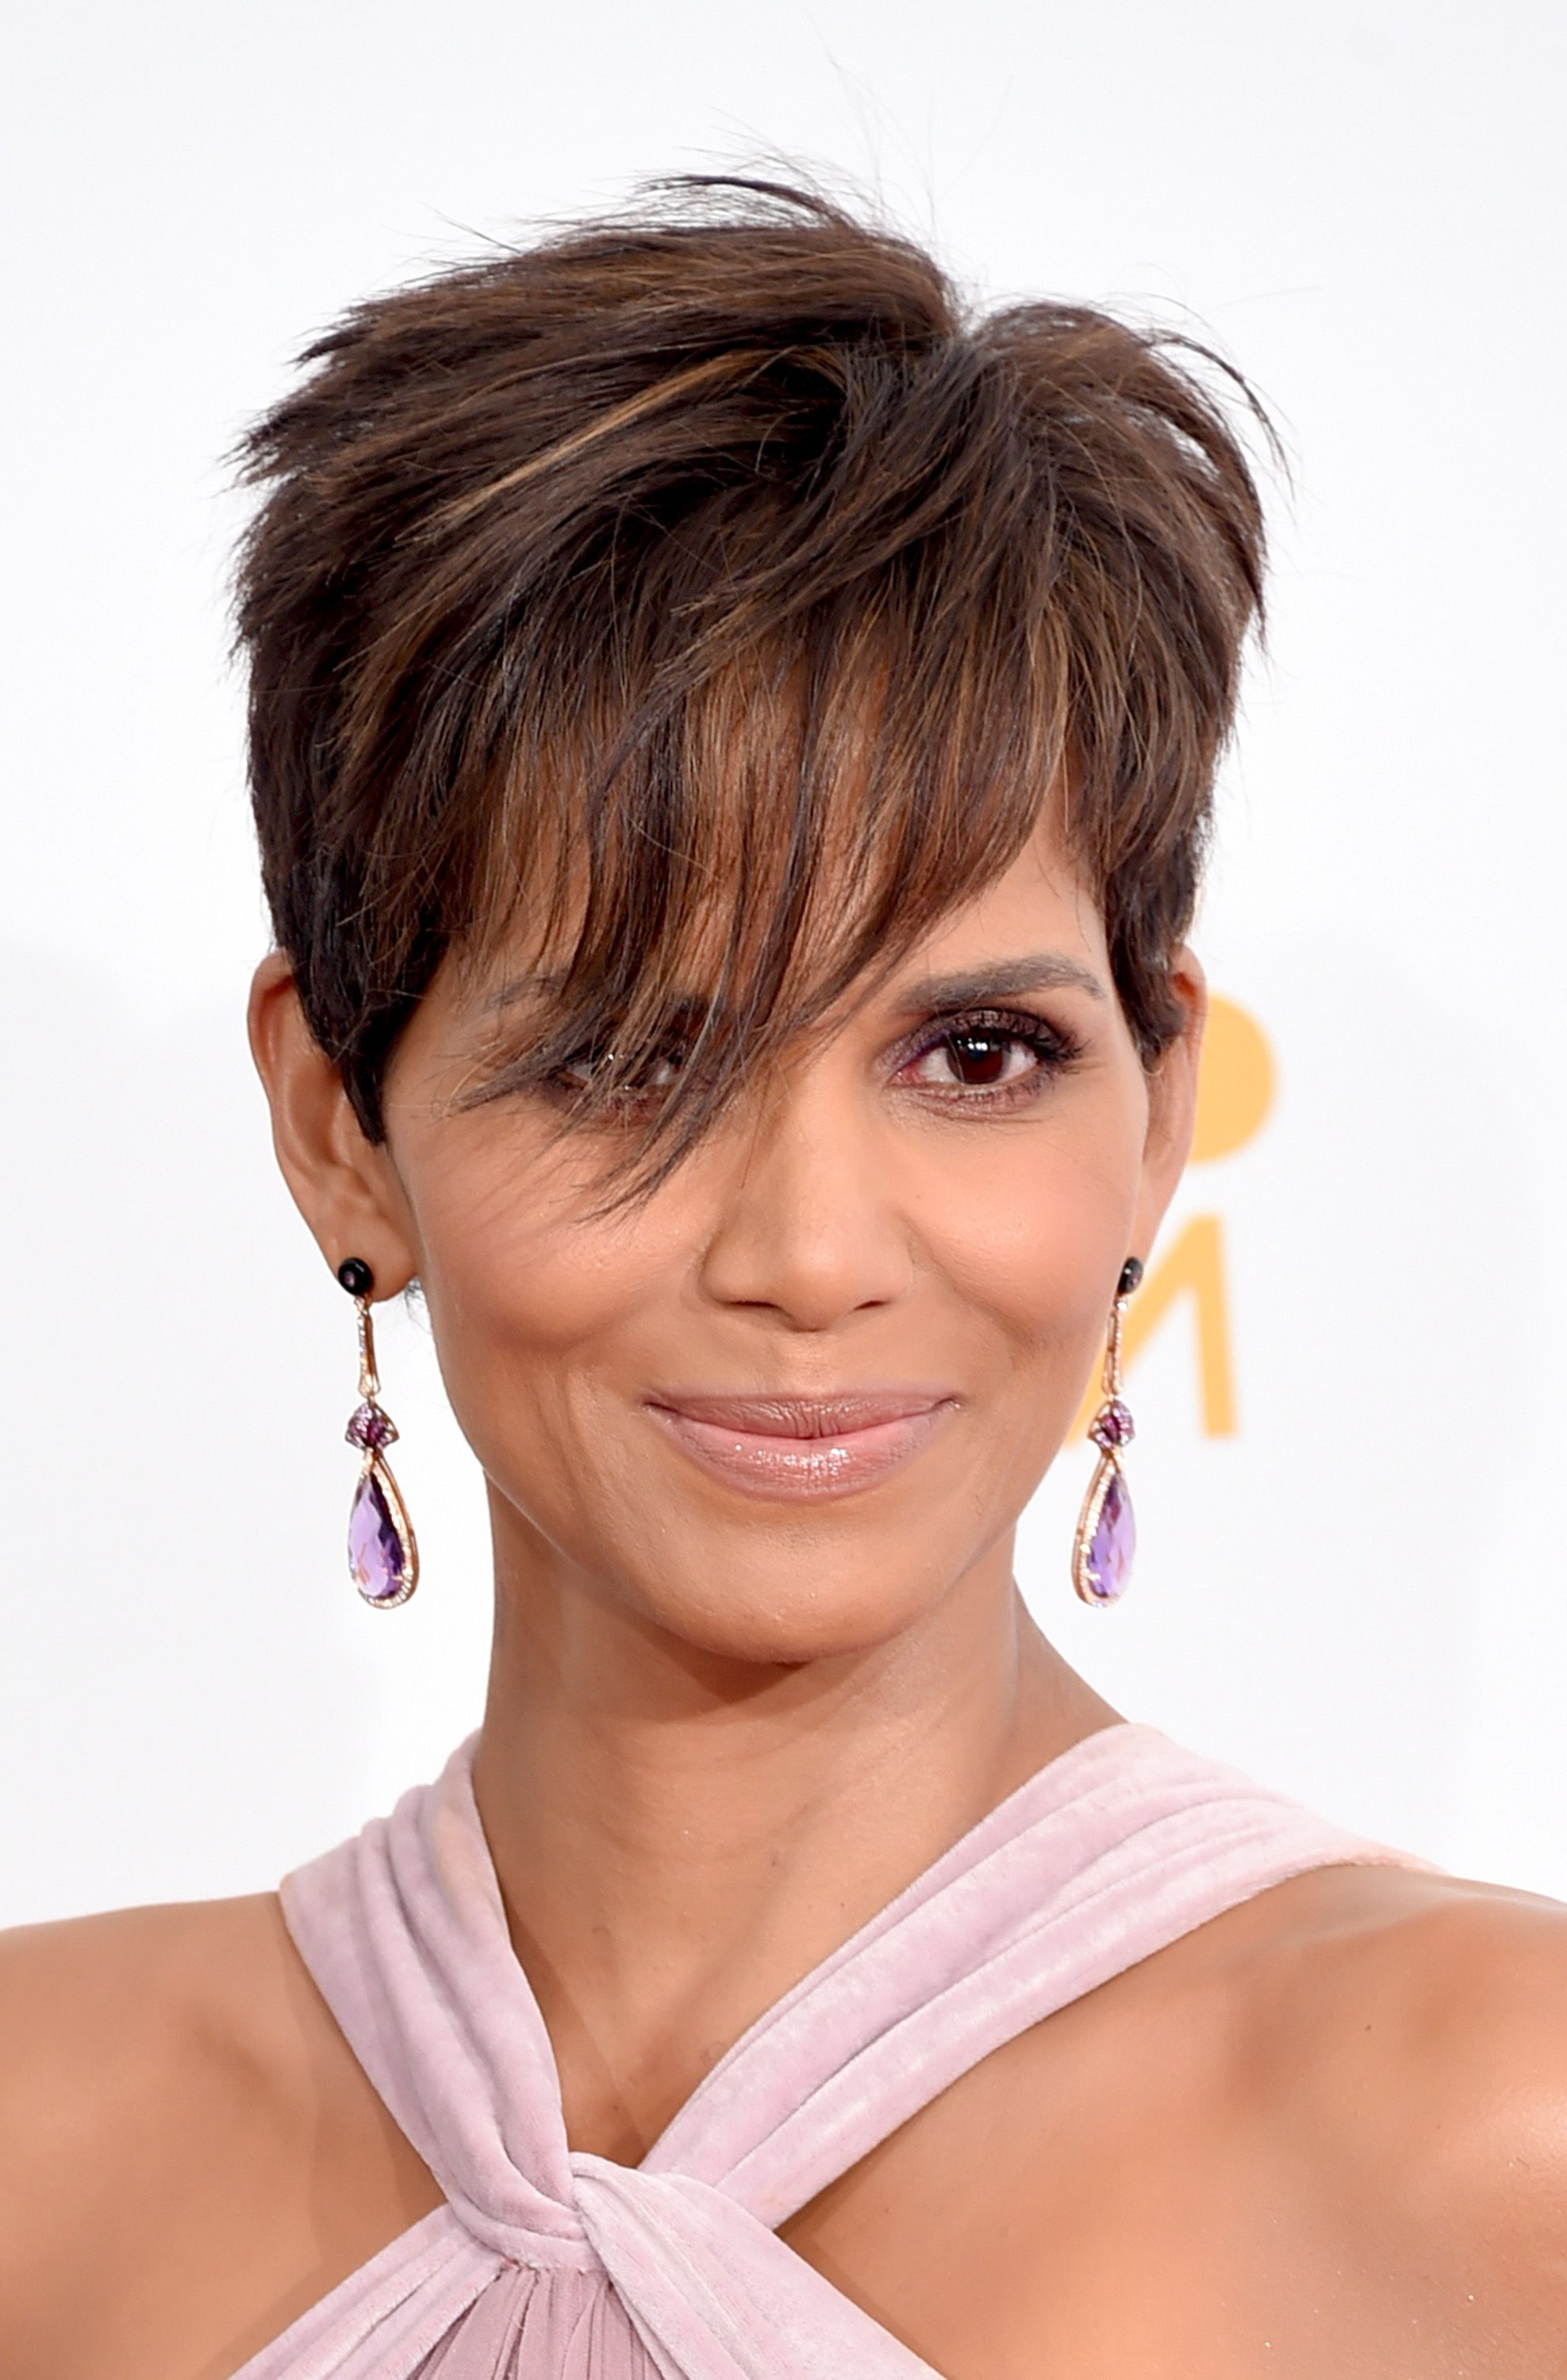 40 Best Short Pixie Cut Hairstyles 2019 – Cute Pixie Throughout Pixie Haircuts With Bangs And Loose Curls (View 8 of 20)